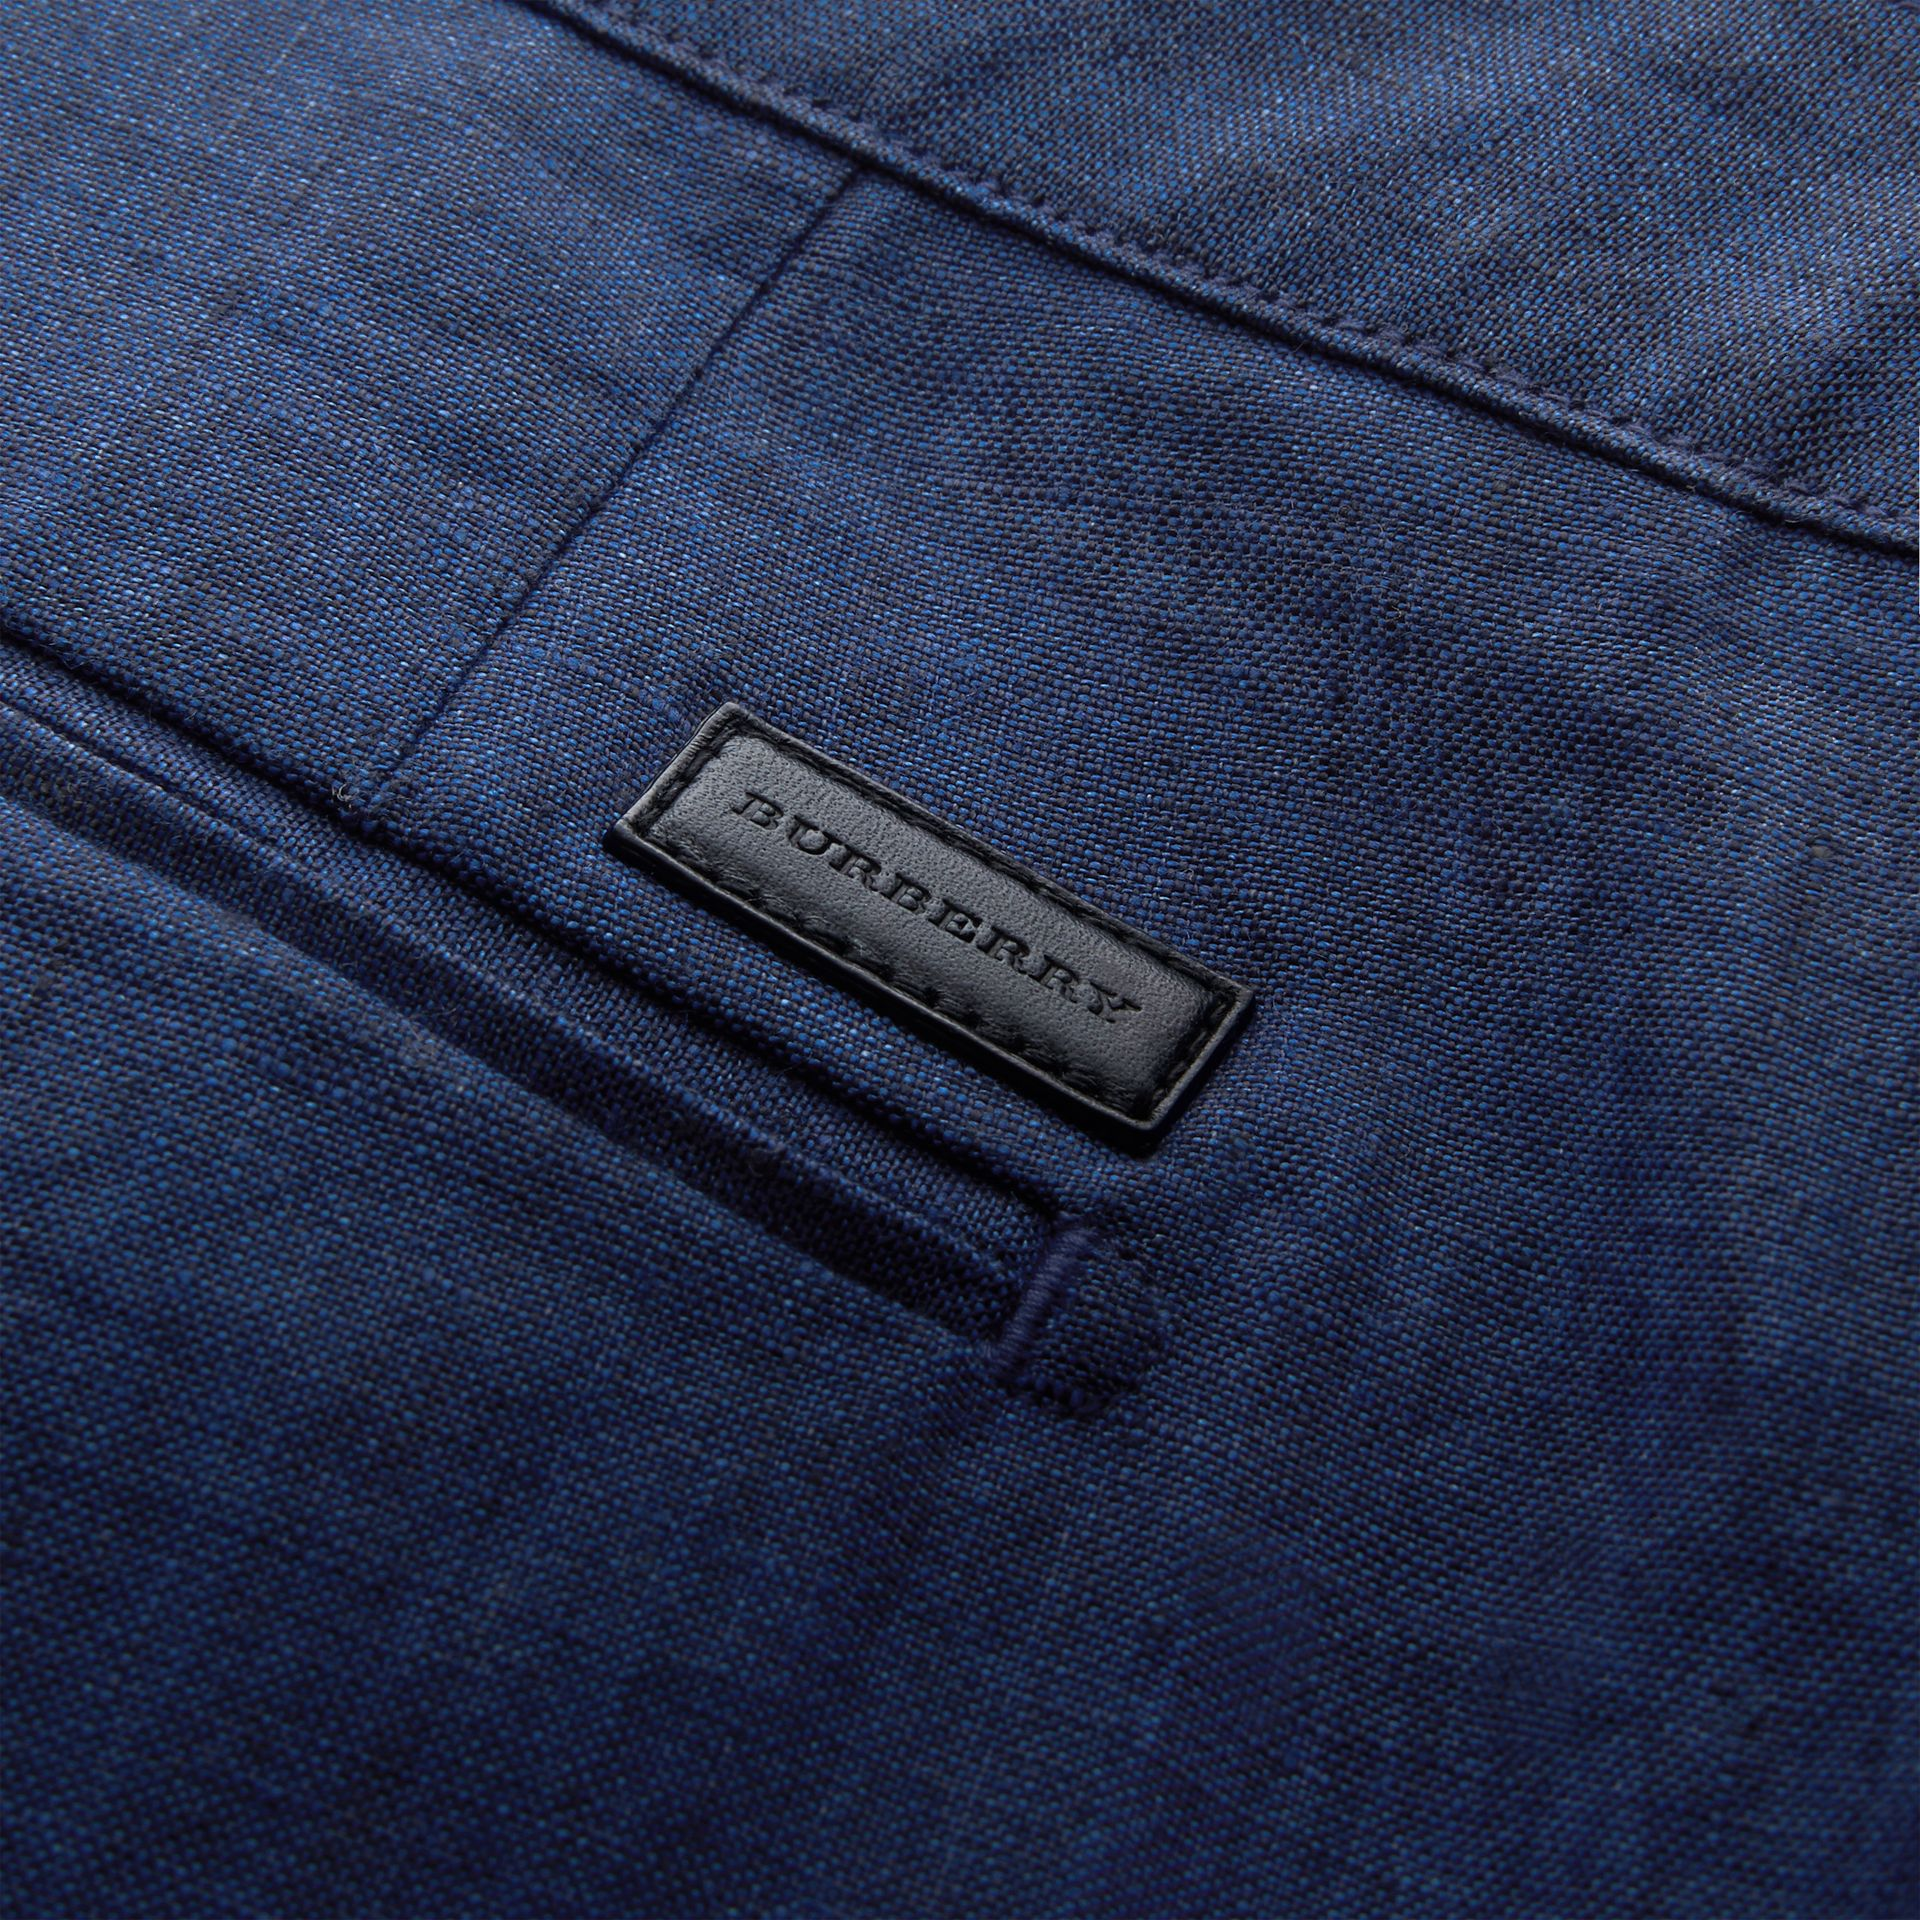 Lightweight Linen Shorts in Steel Blue - Men | Burberry Canada - gallery image 1